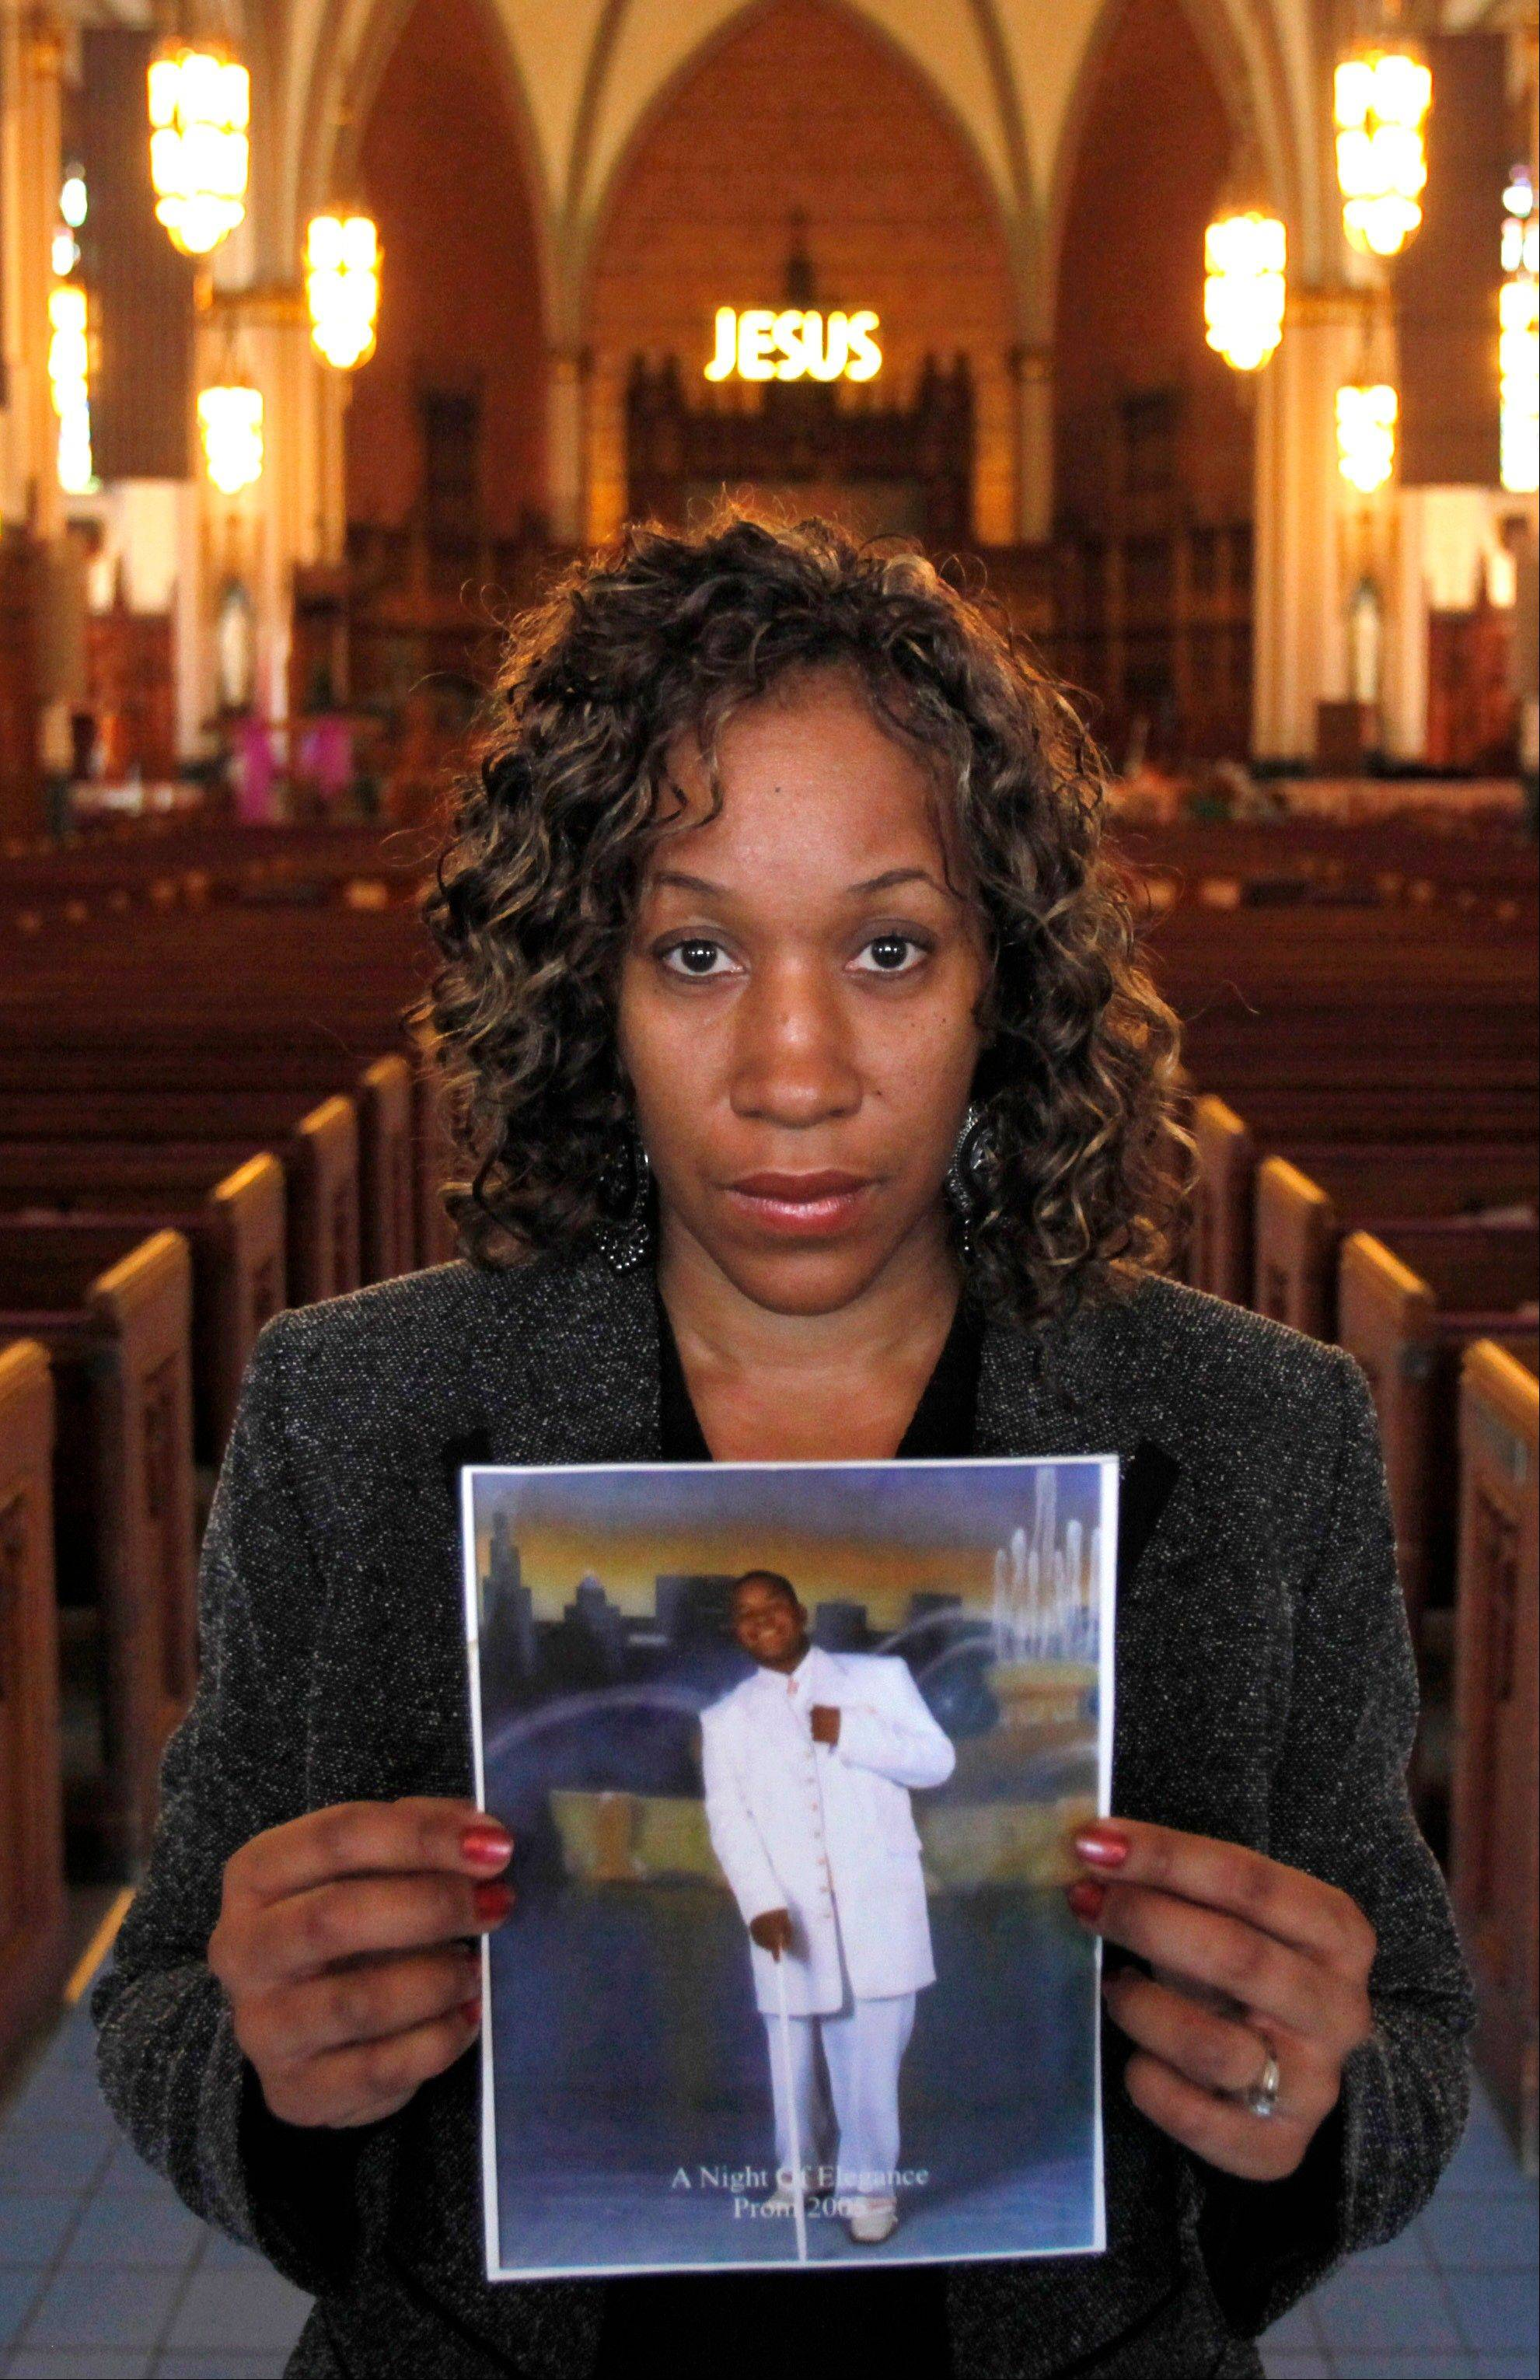 Pam Bosley stands inside the Chicago's St. Sabina Catholic Church and poses with a photograph of her son, Terrell, who was gunned down in 2006. Bosley now works with kids 14 to 21 at the church, teaching them life and leadership skills and ways to reduce violence.